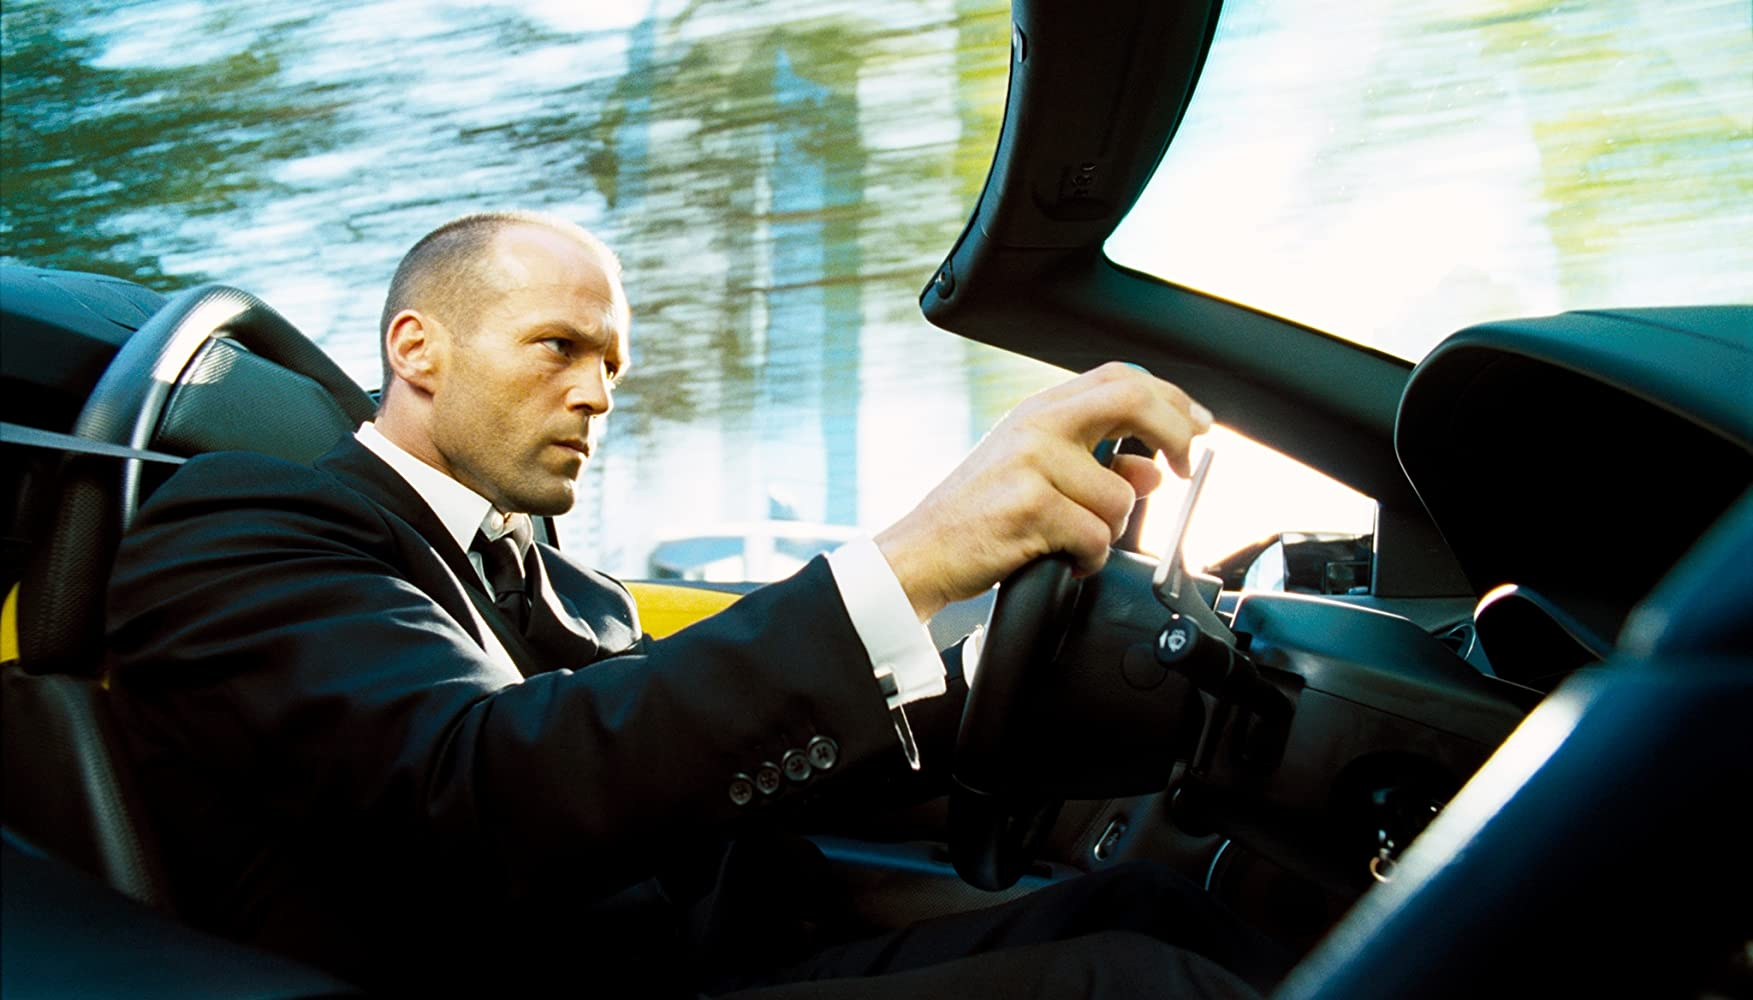 Jason Statham in Transporter 2 (2005)